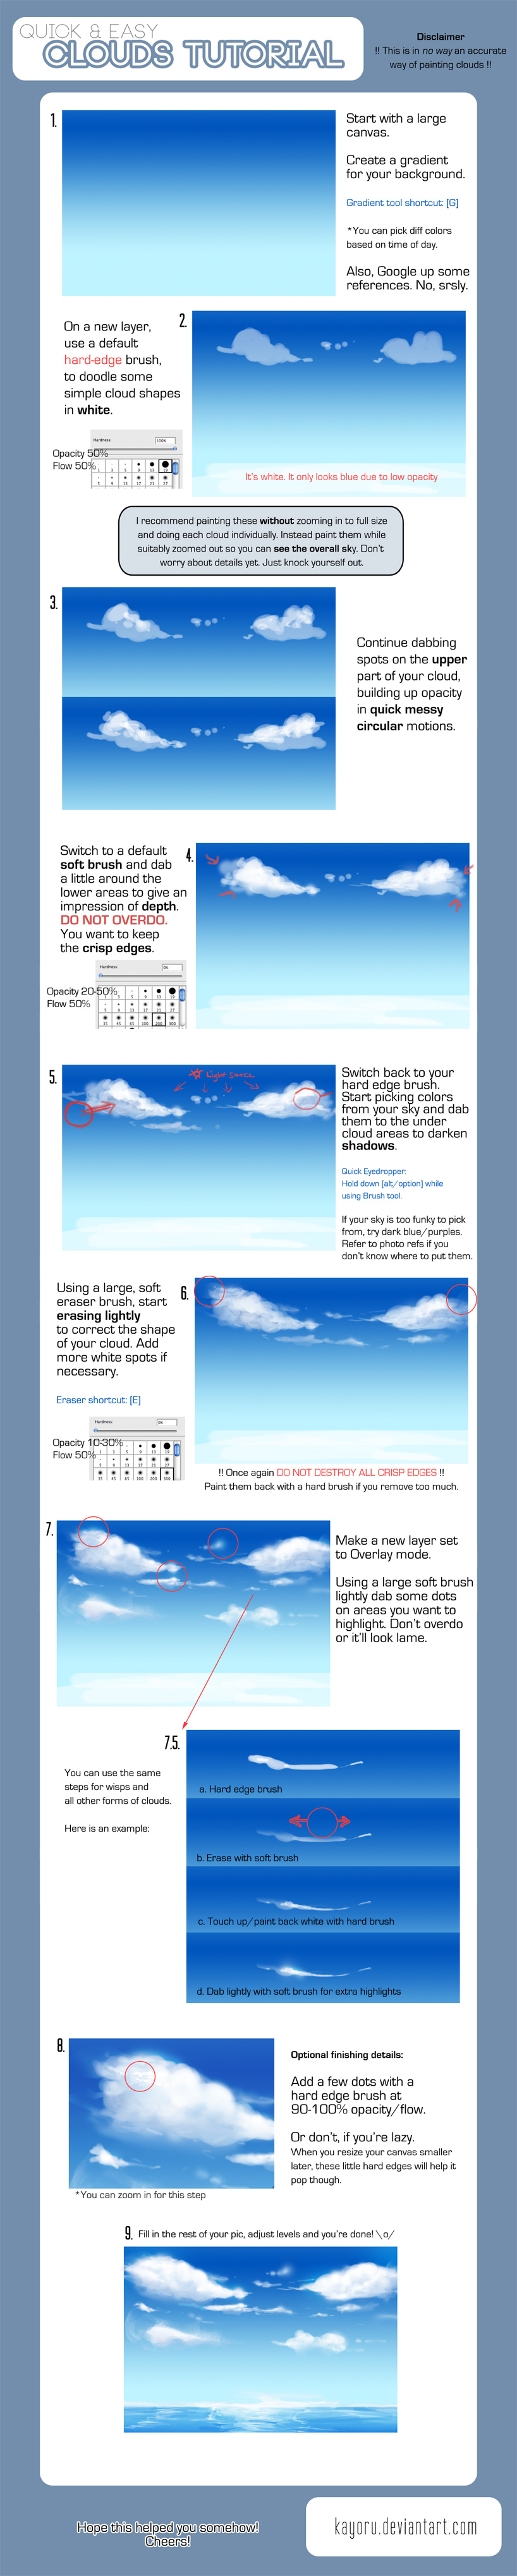 Quick and Easy Cloud Tutorial by kayoru